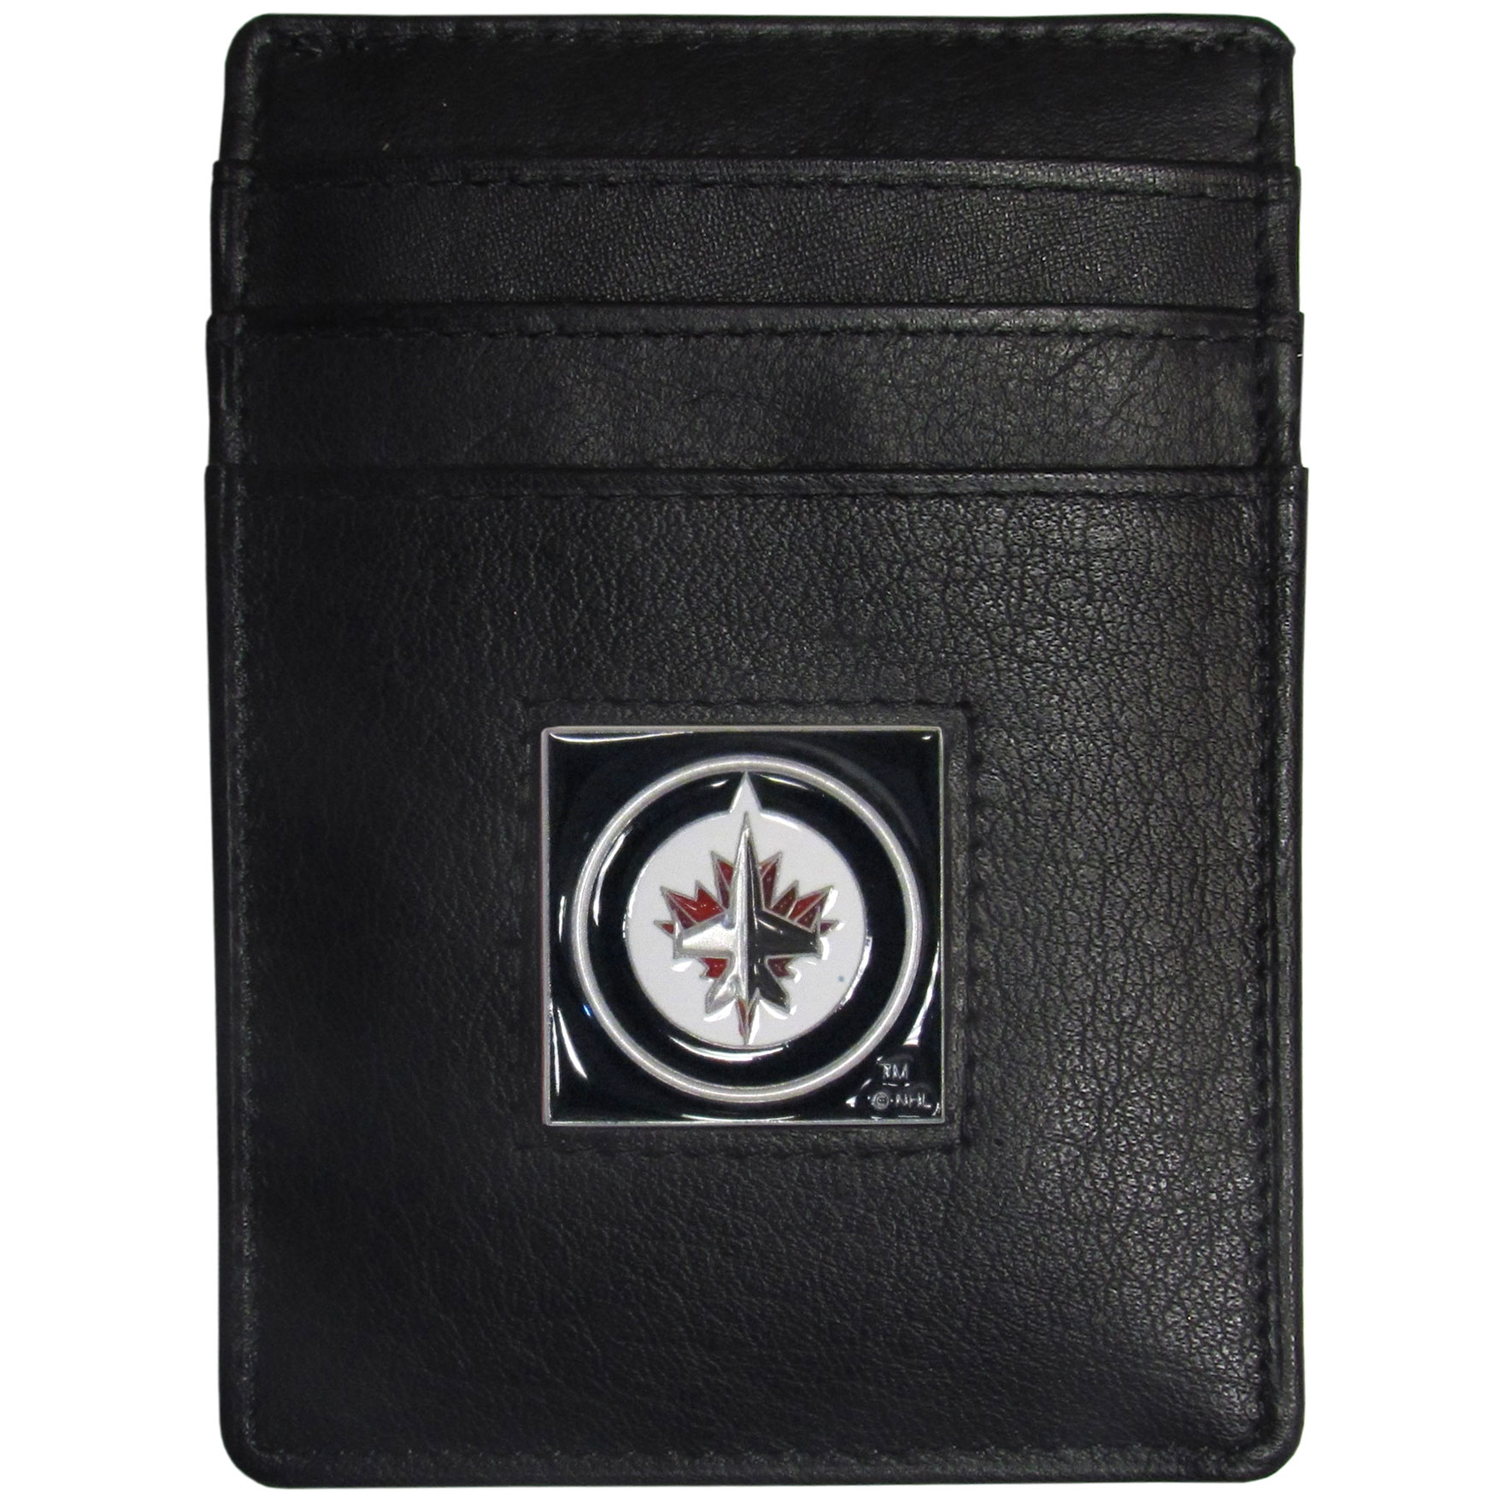 Winnipeg Jets™ Leather Money Clip/Cardholder - Our officially licensed Money Clip/Card Holders won't make you choose between paper or plastic because they stow both easily. Features our sculpted and enameled Winnipeg Jets™ emblem on the front of the wallet.